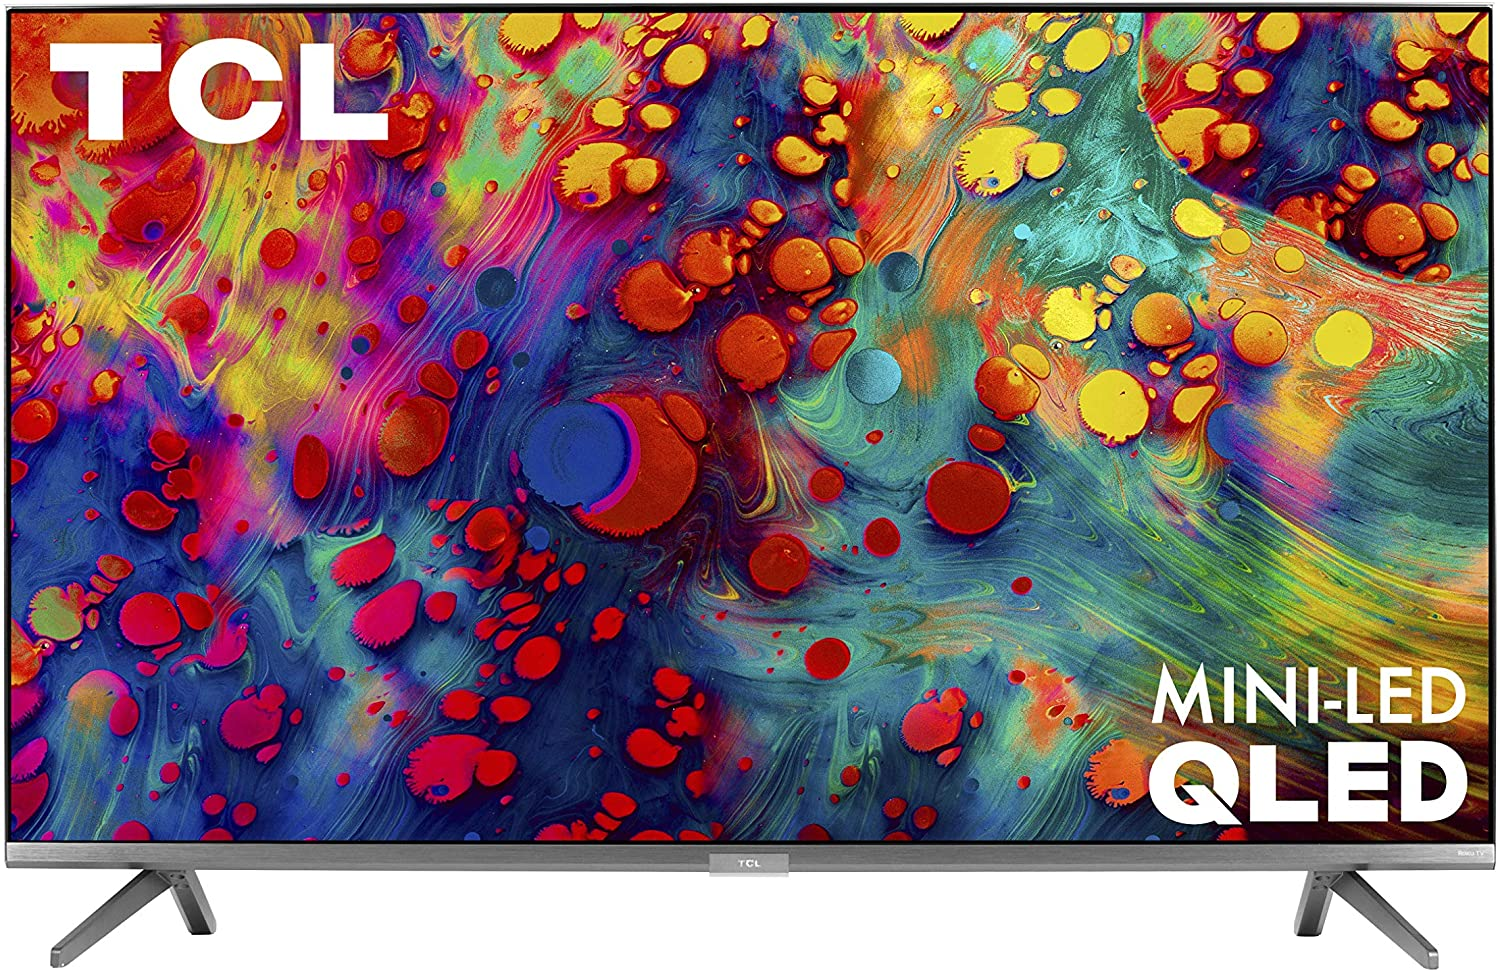 2. TCL 6-Series 55-Inch 4K TV